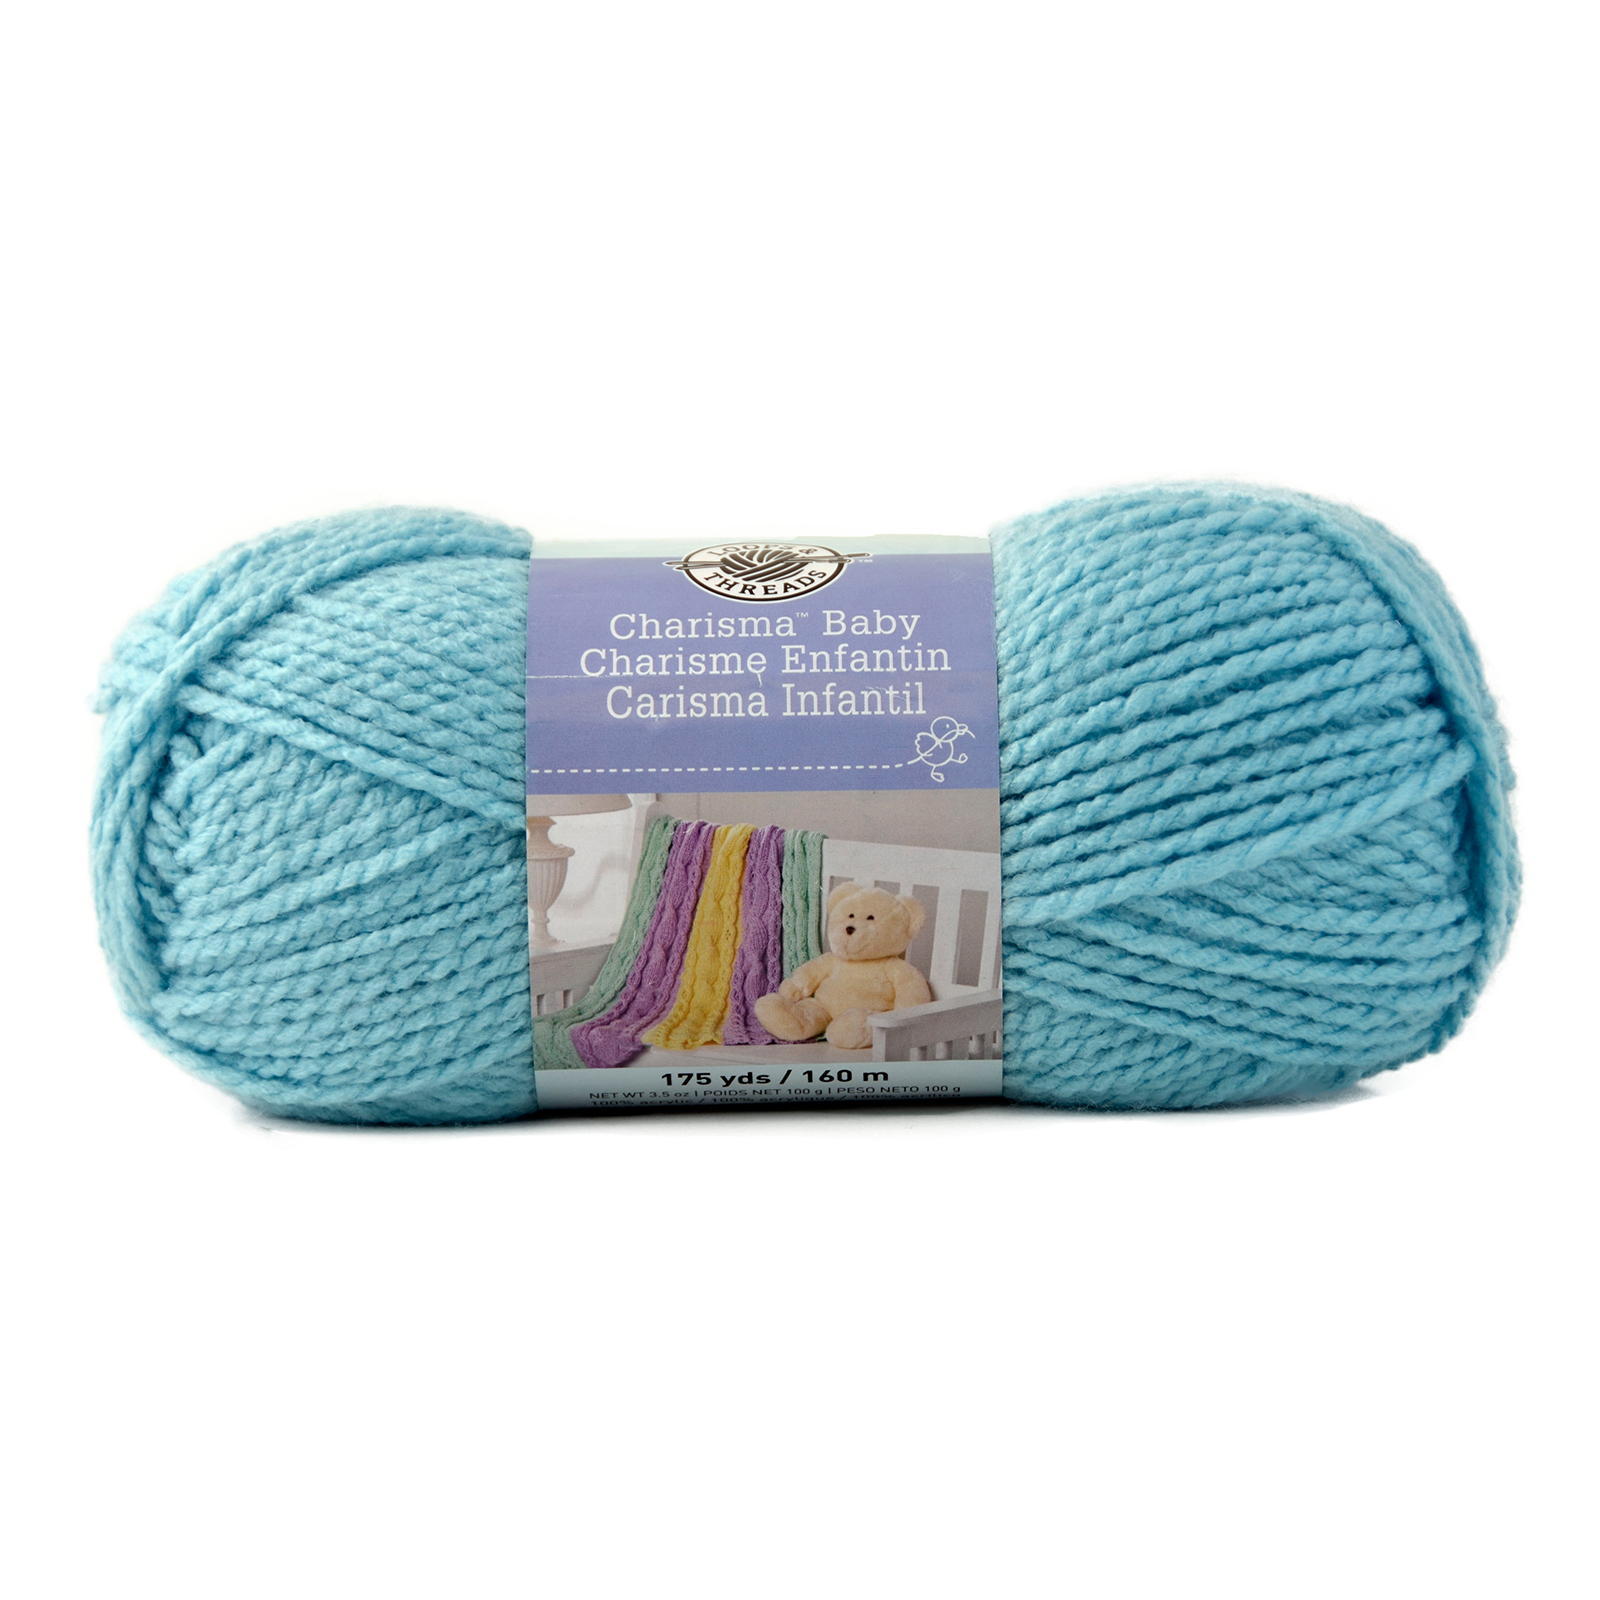 Charisma  Baby Yarn by Loops & Threads